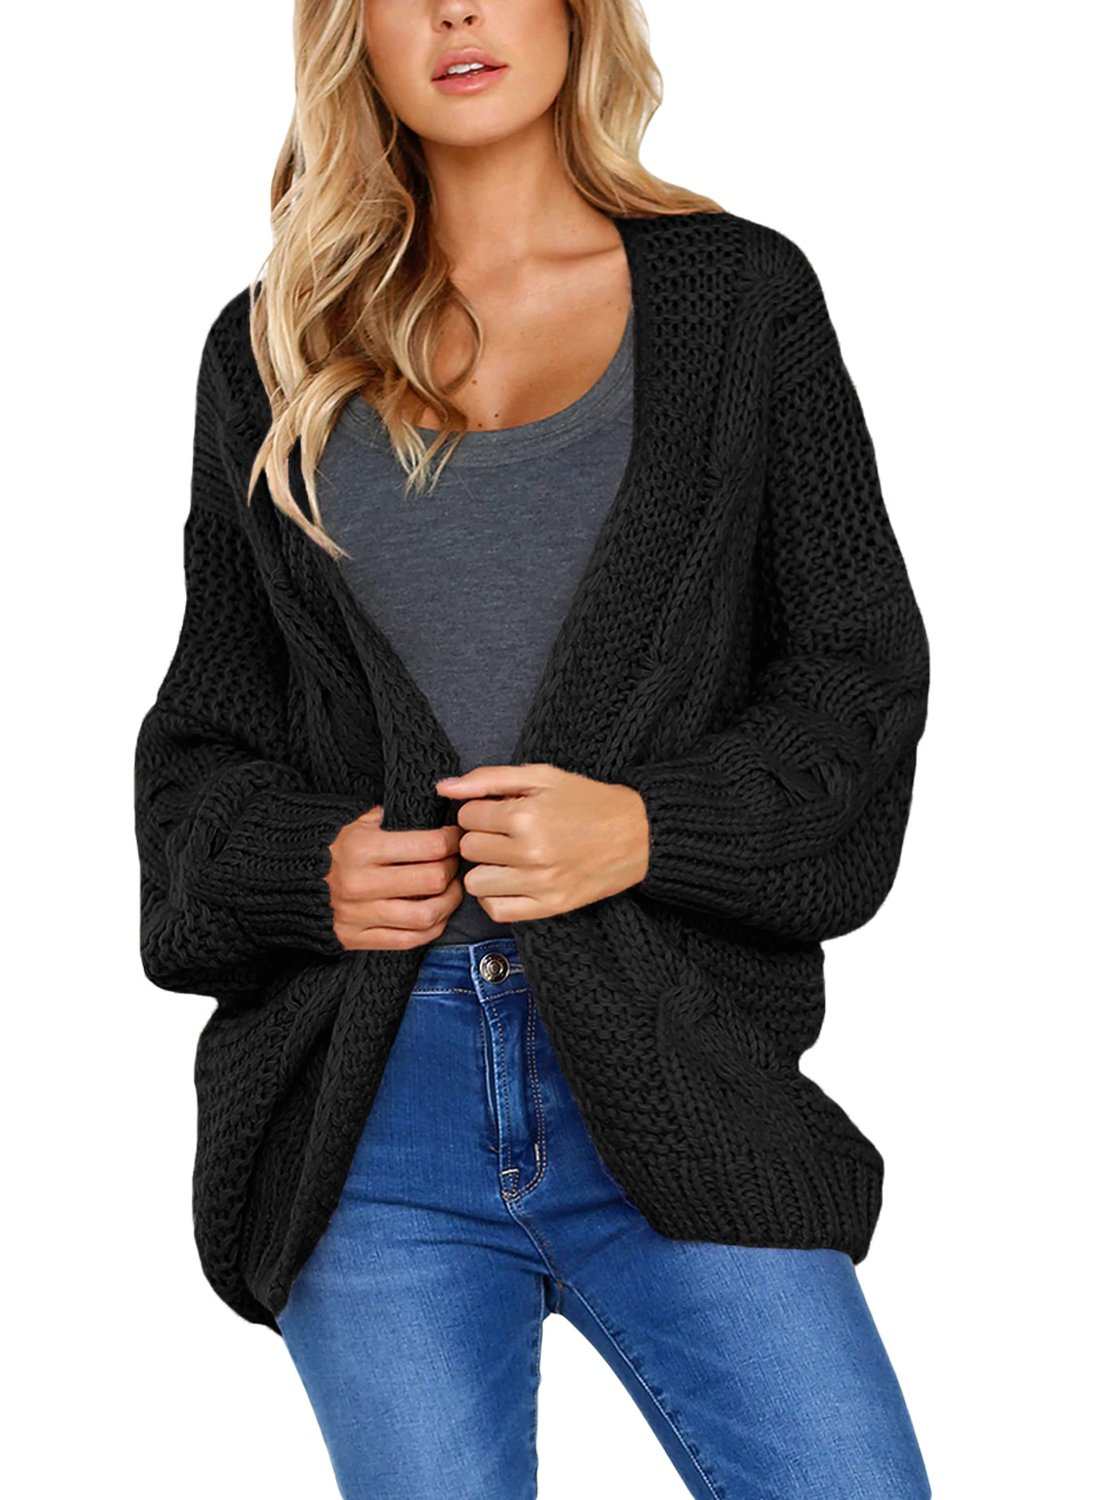 Dokotoo Womens Sweater Cardigans Fashion Ladies Winter Warm Cozy Open Front Long Sleeve Chunky Thin Cable Knit Cardigan Sweater Pullover Outwear Coat Black Medium by Dokotoo